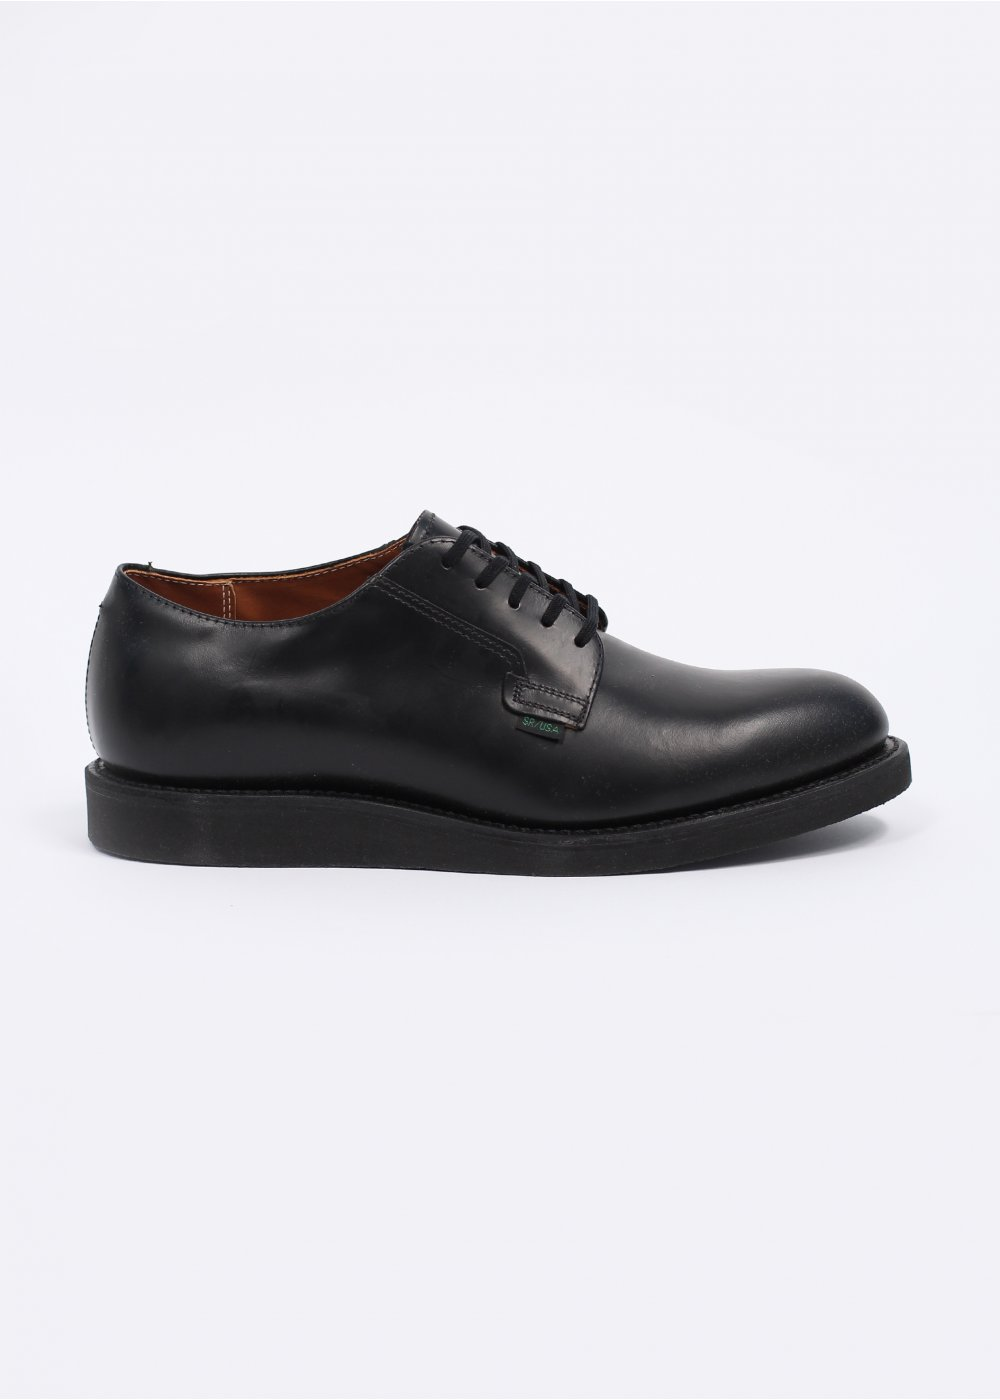 Red Wing Shoes 101 Heritage Work Oxford